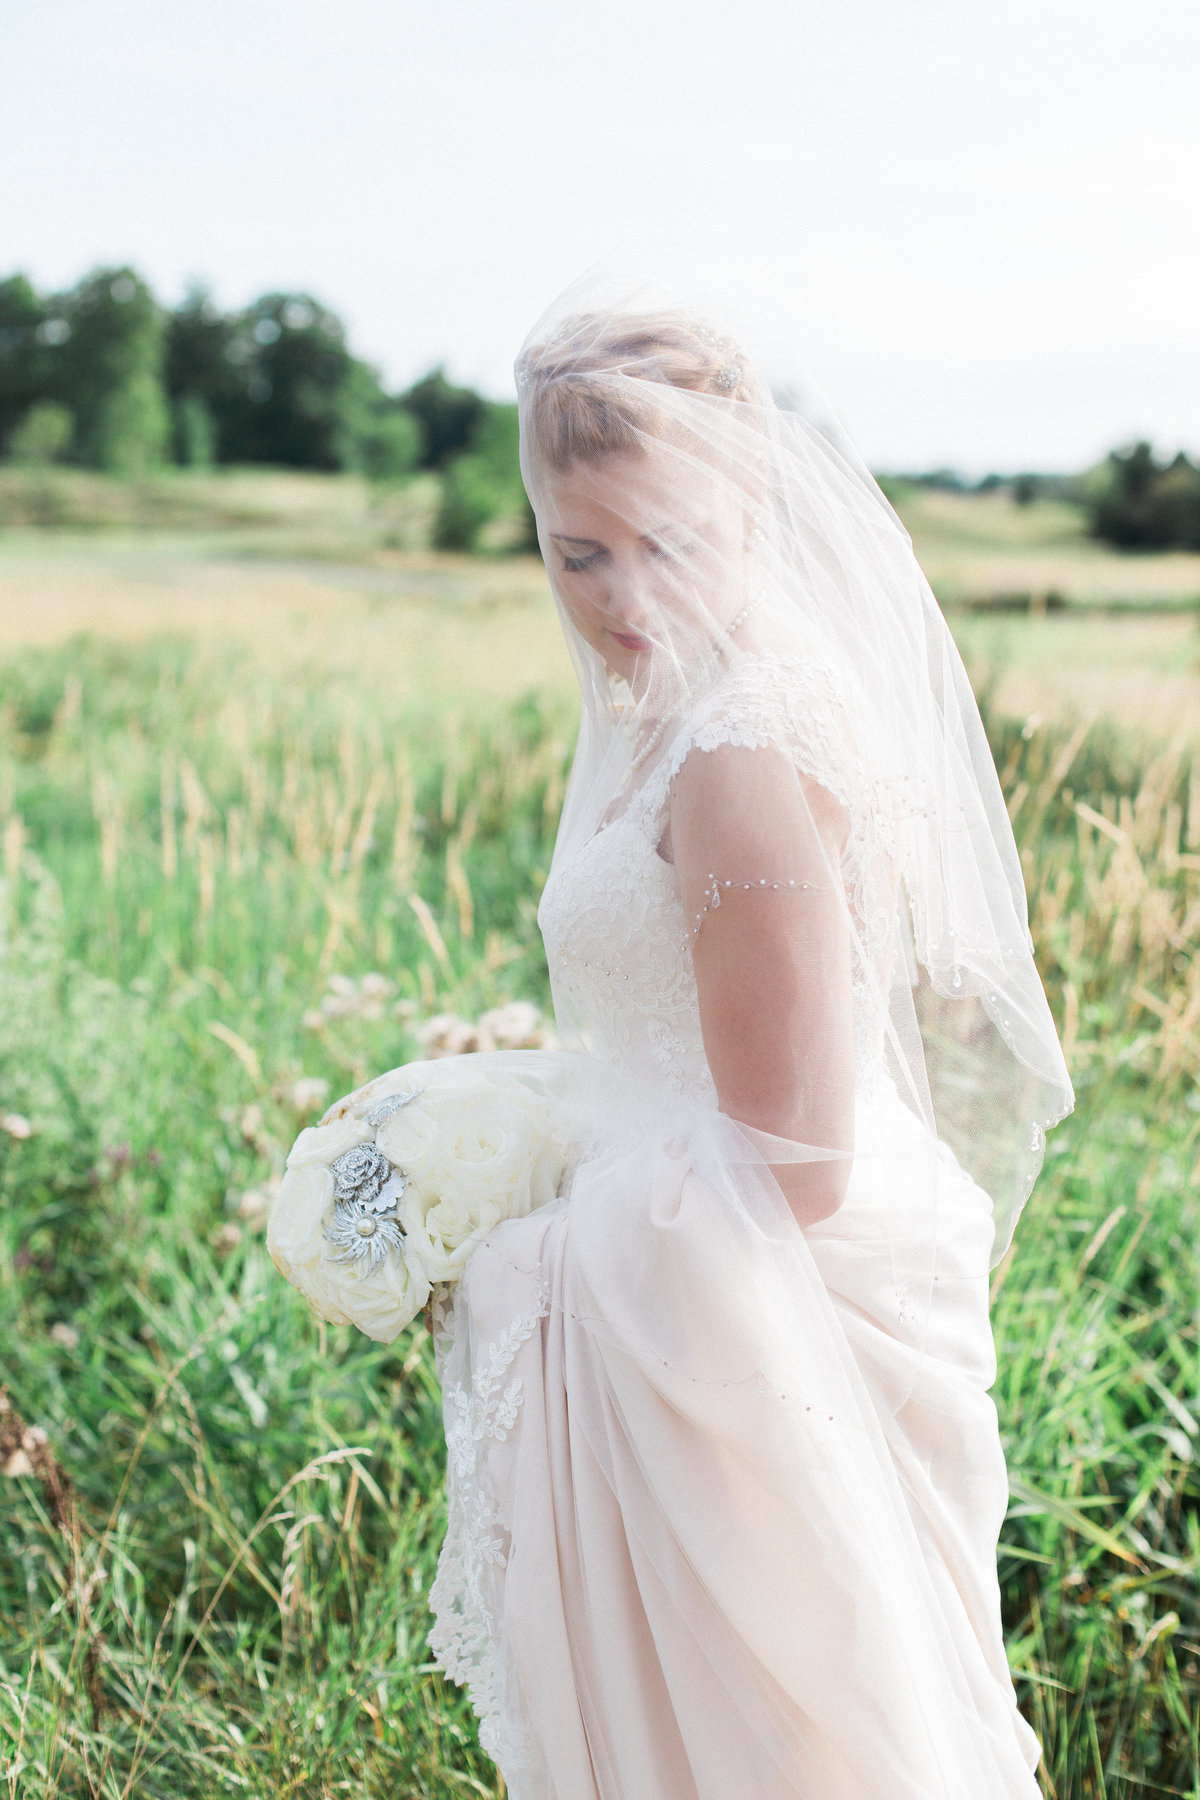 Destination Wedding Photographer Jess Collins Photography at Guelph Wedding Venue Ariss Valley Golf Course, Bride in Veil Wedding Photo